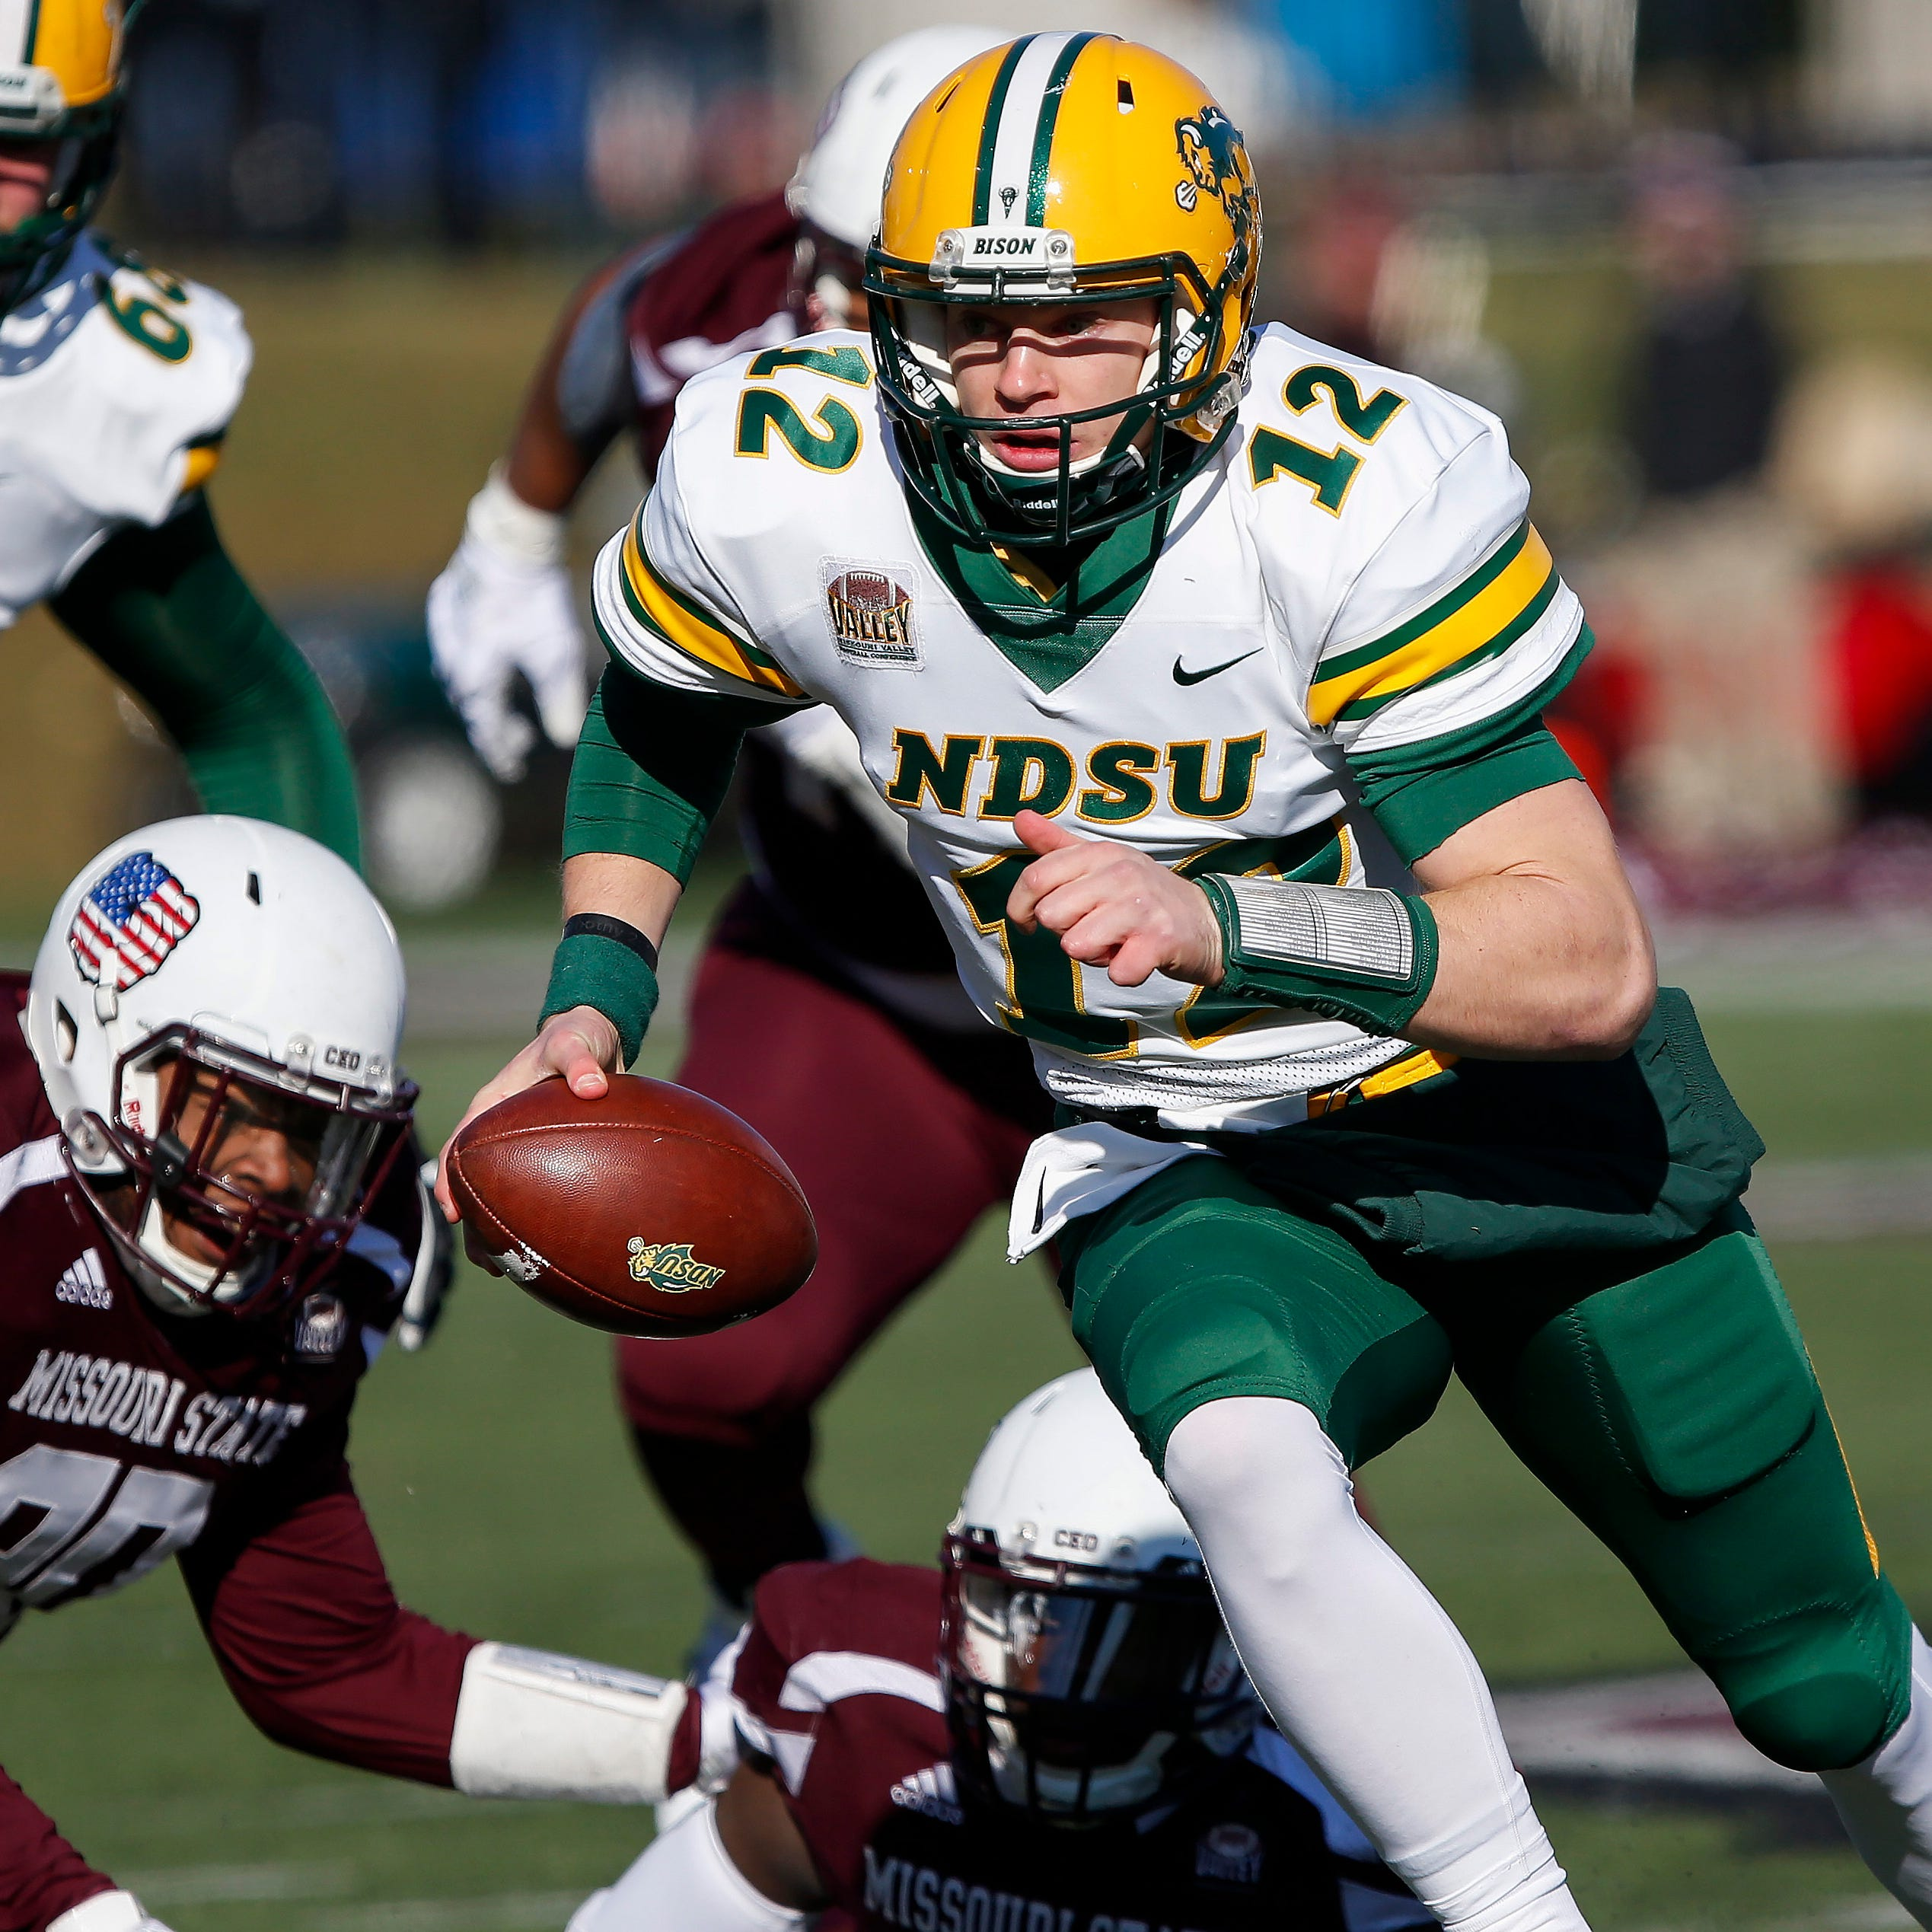 Missouri State had no answers in blowout loss to No. 1 North Dakota State